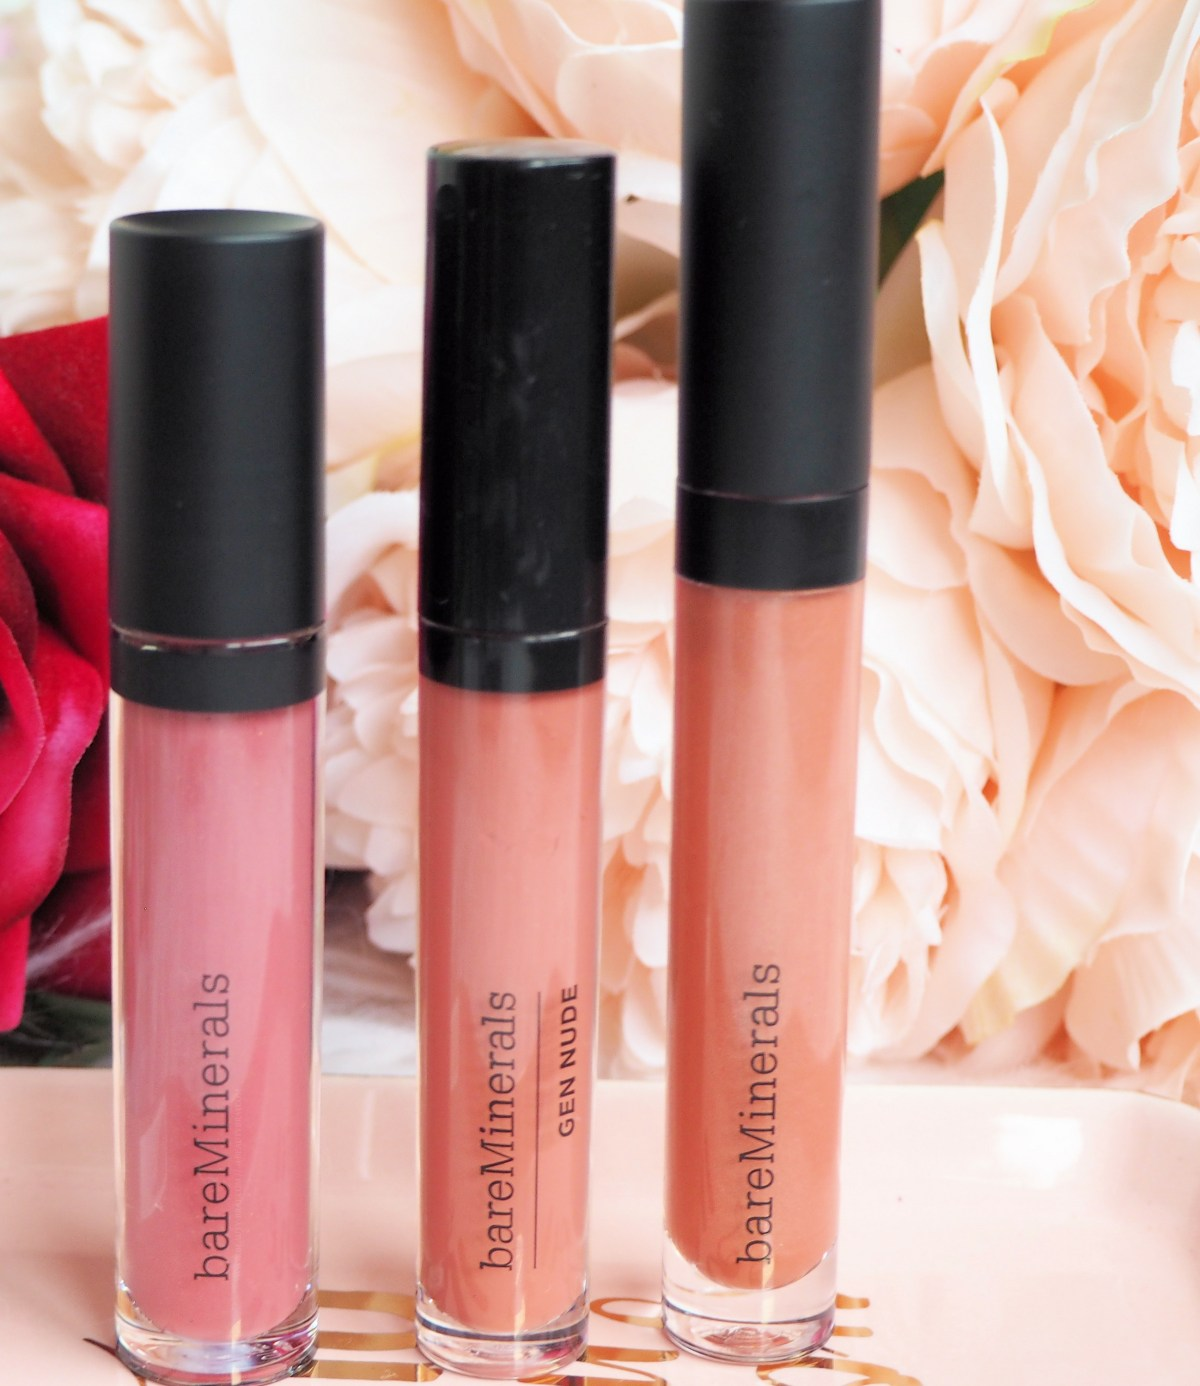 Bare Minerals Starlight Gloss Lip Kit